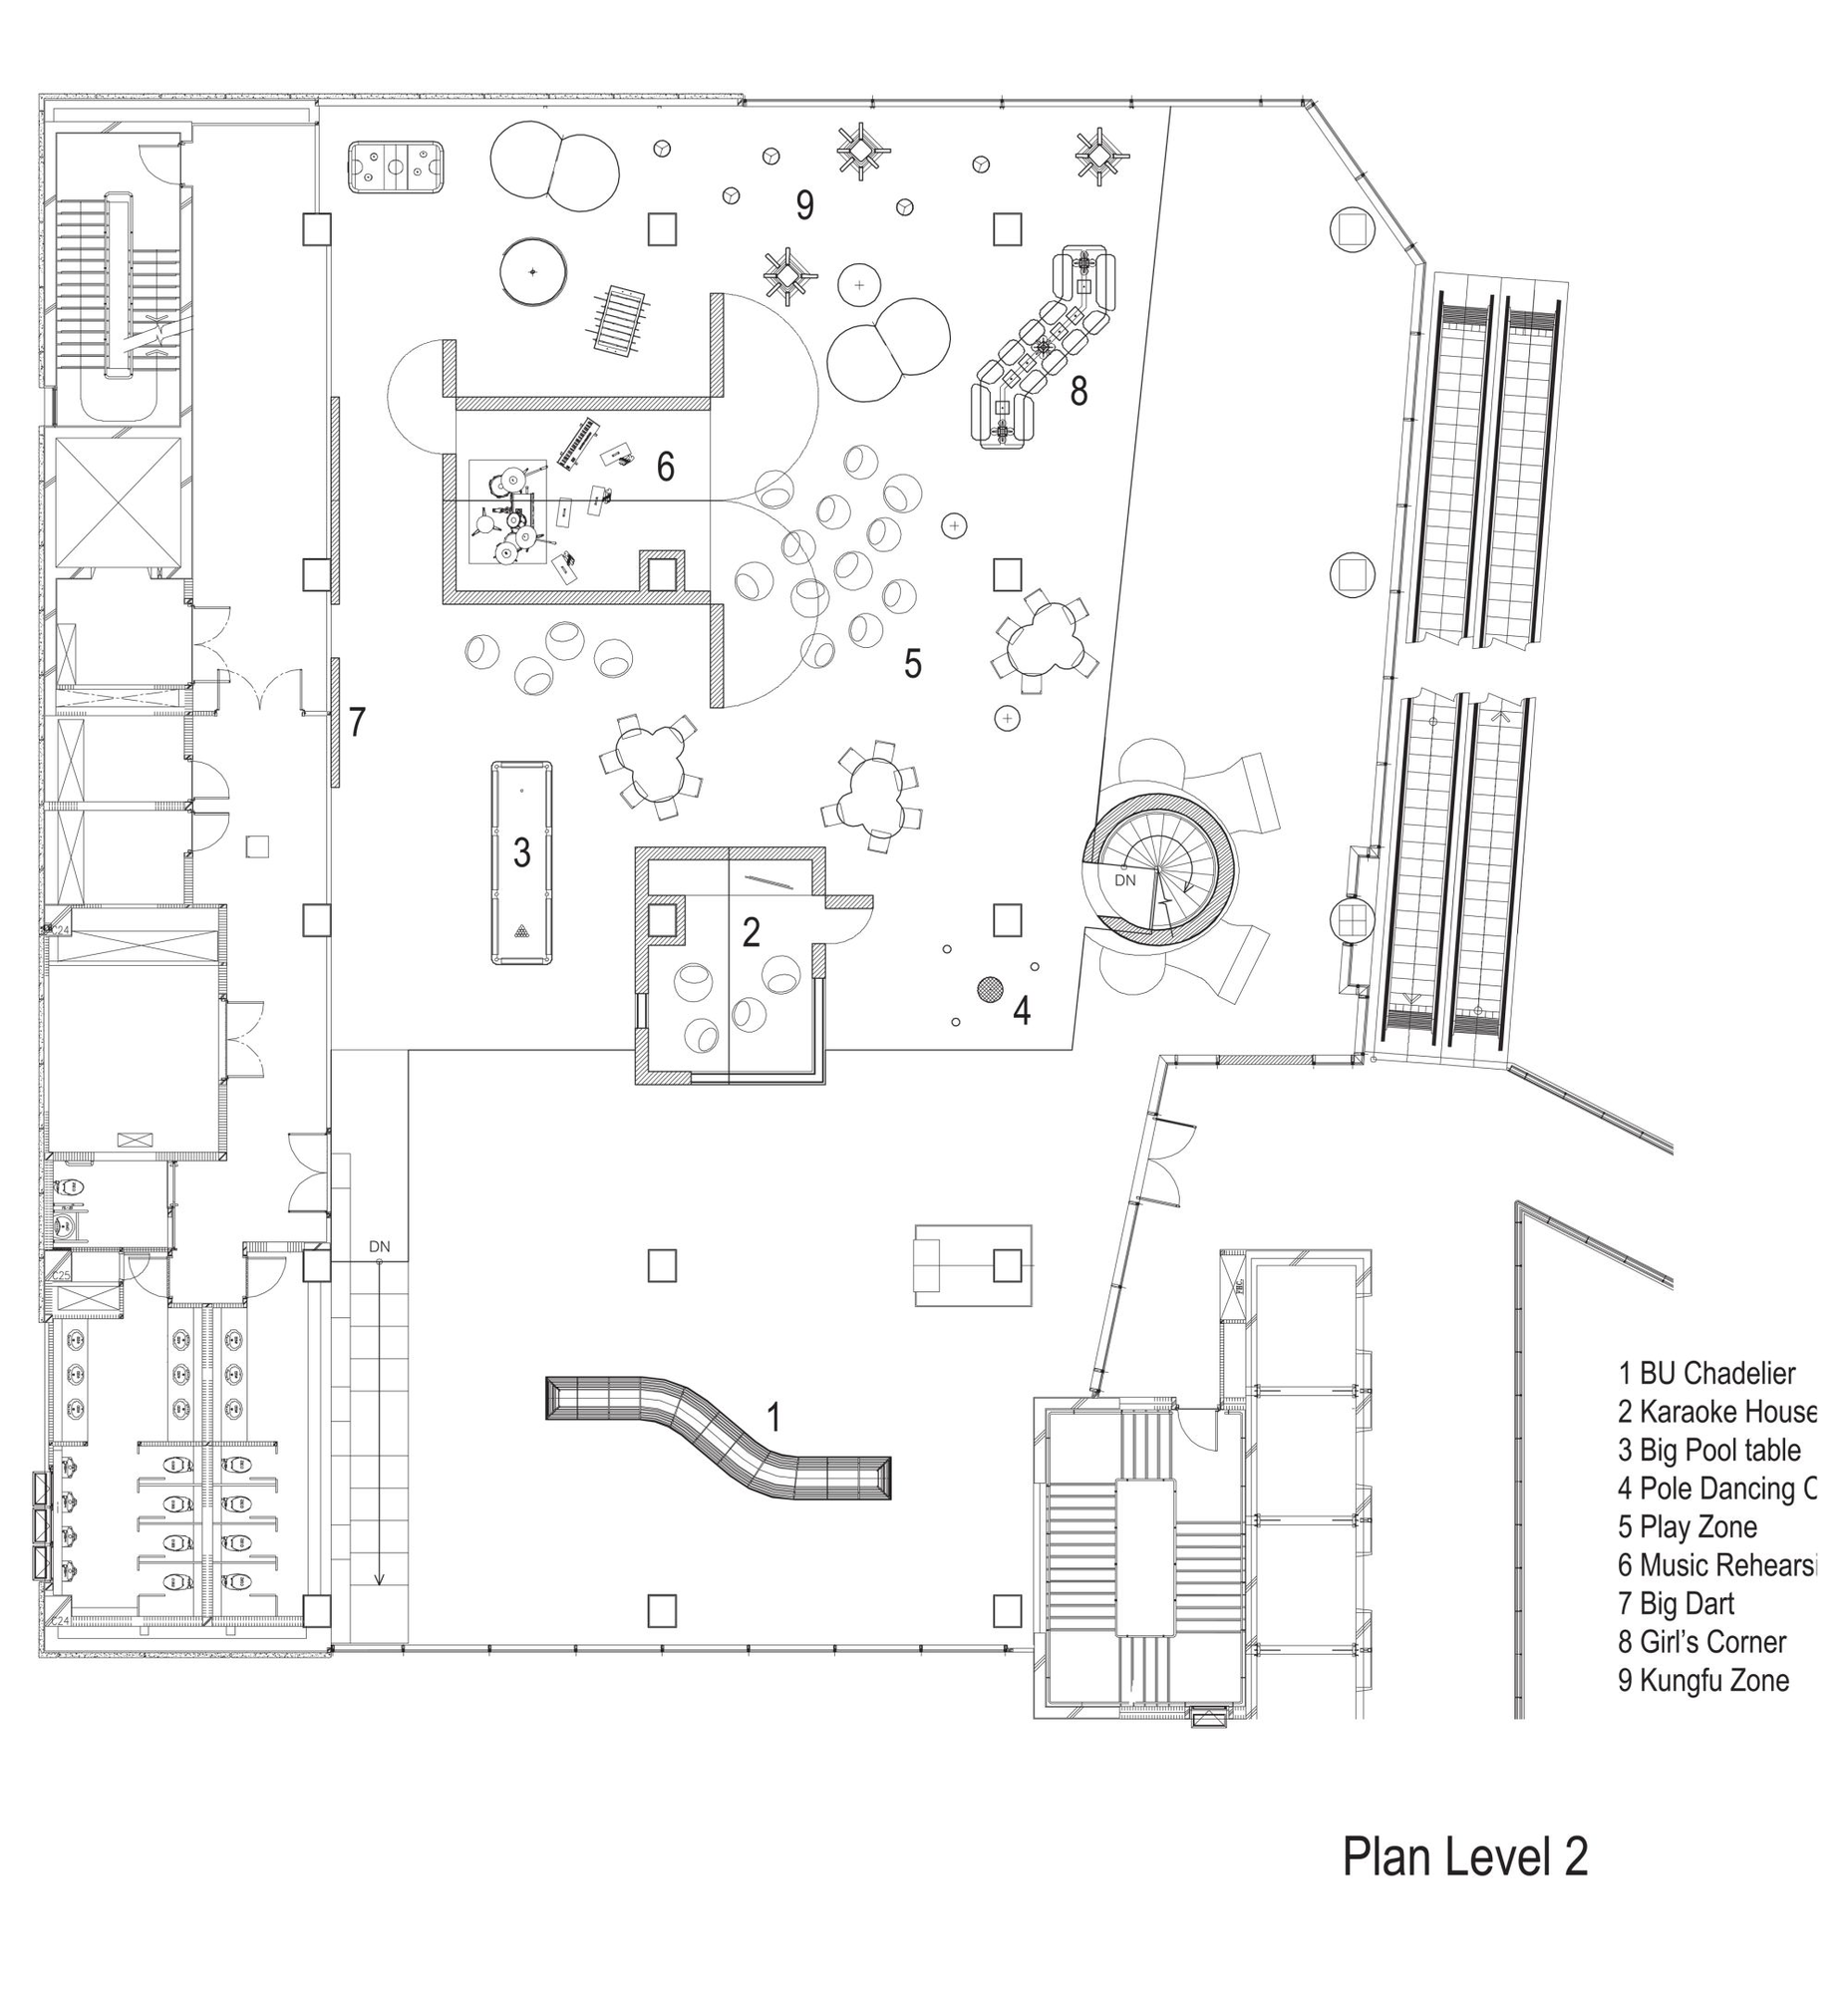 Hotel Lounge Floor Plan